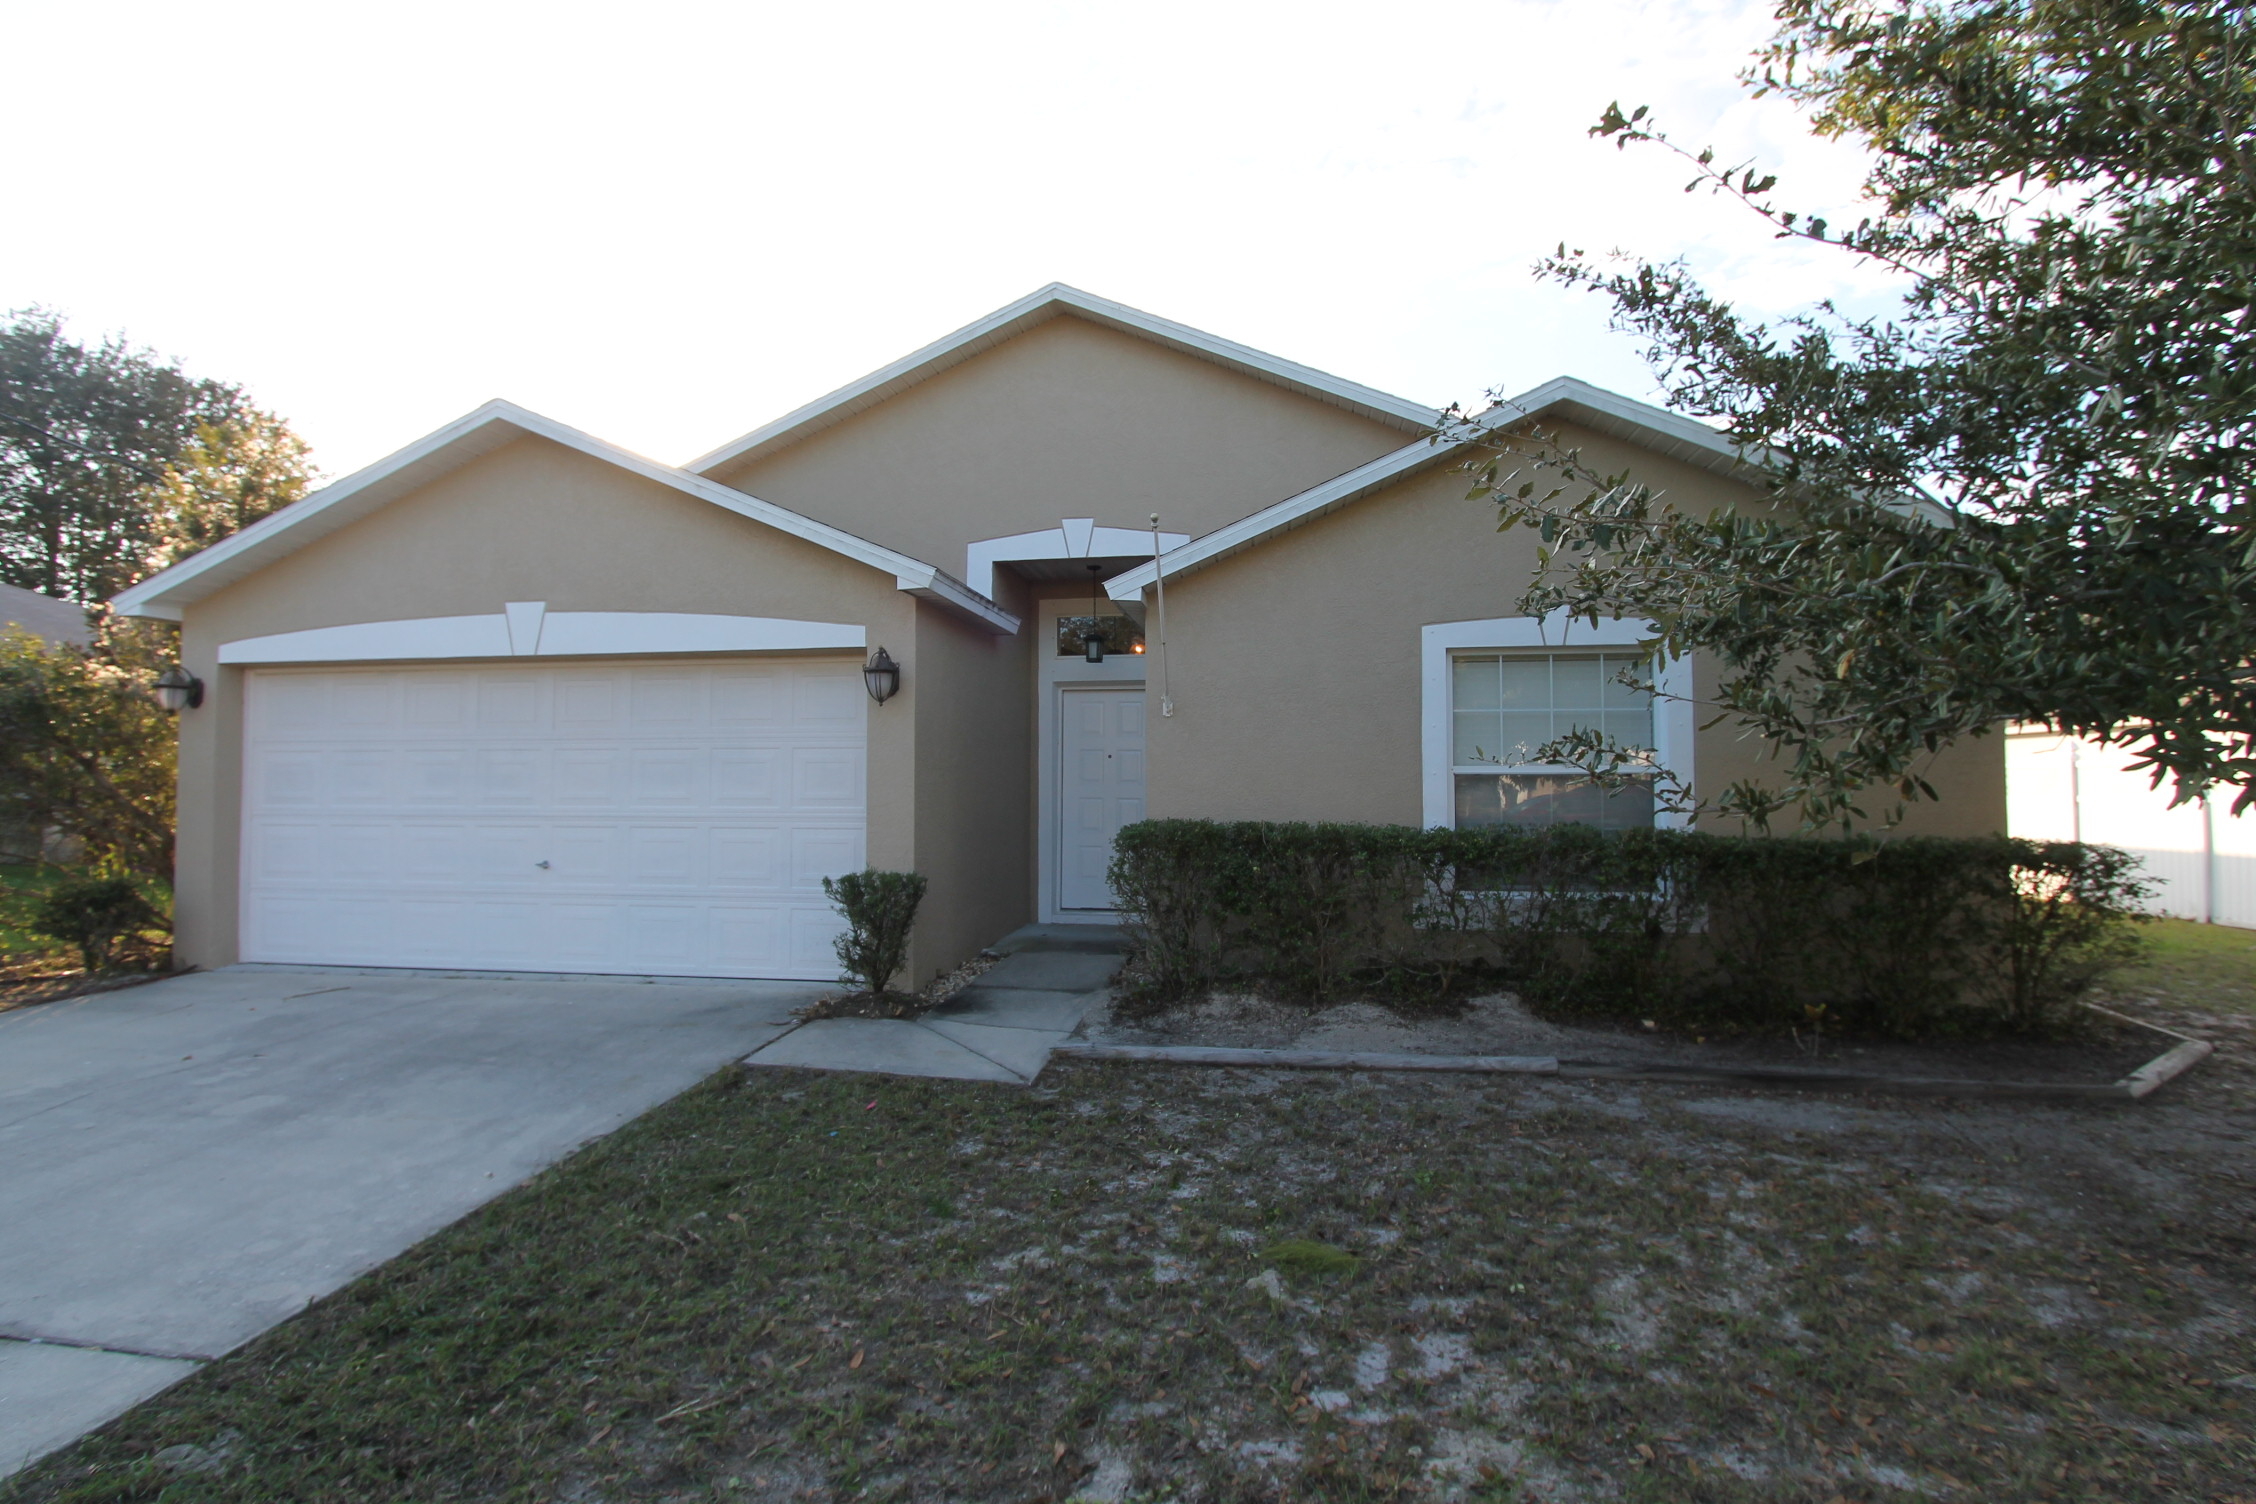 1010 Lundy Dr, Titusville, Florida 32796